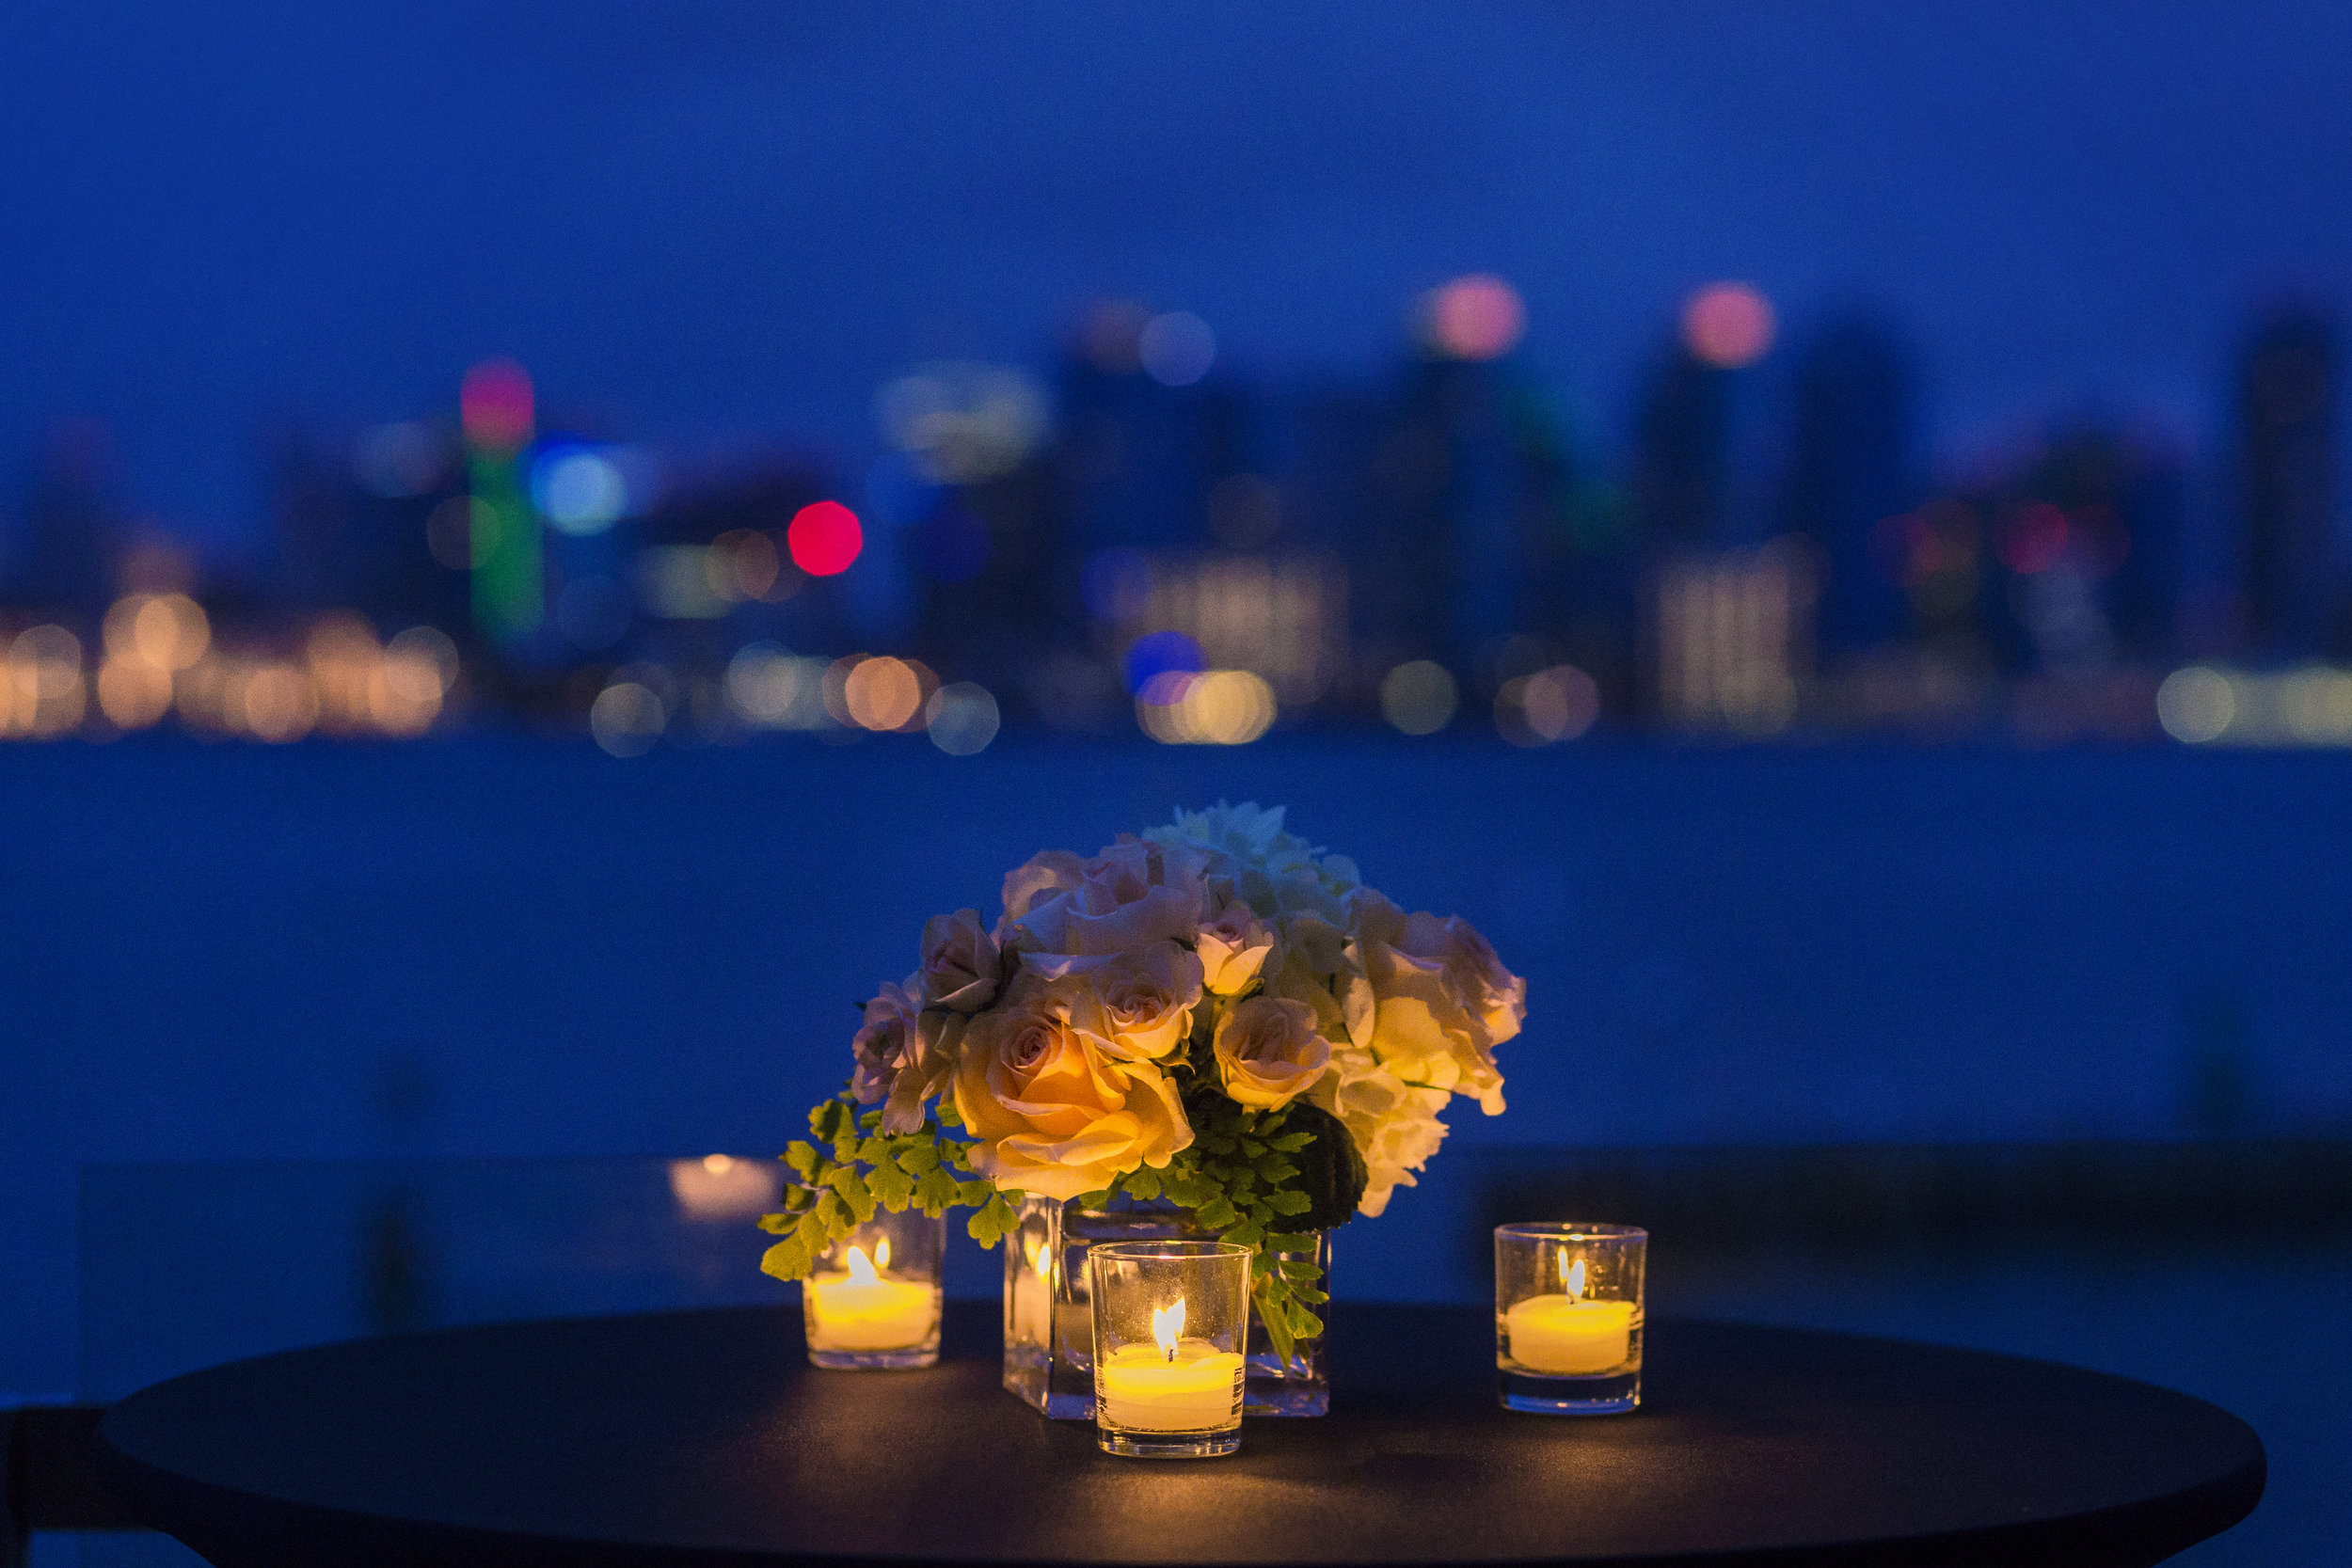 Flowers and candle on a table waiting for a date.